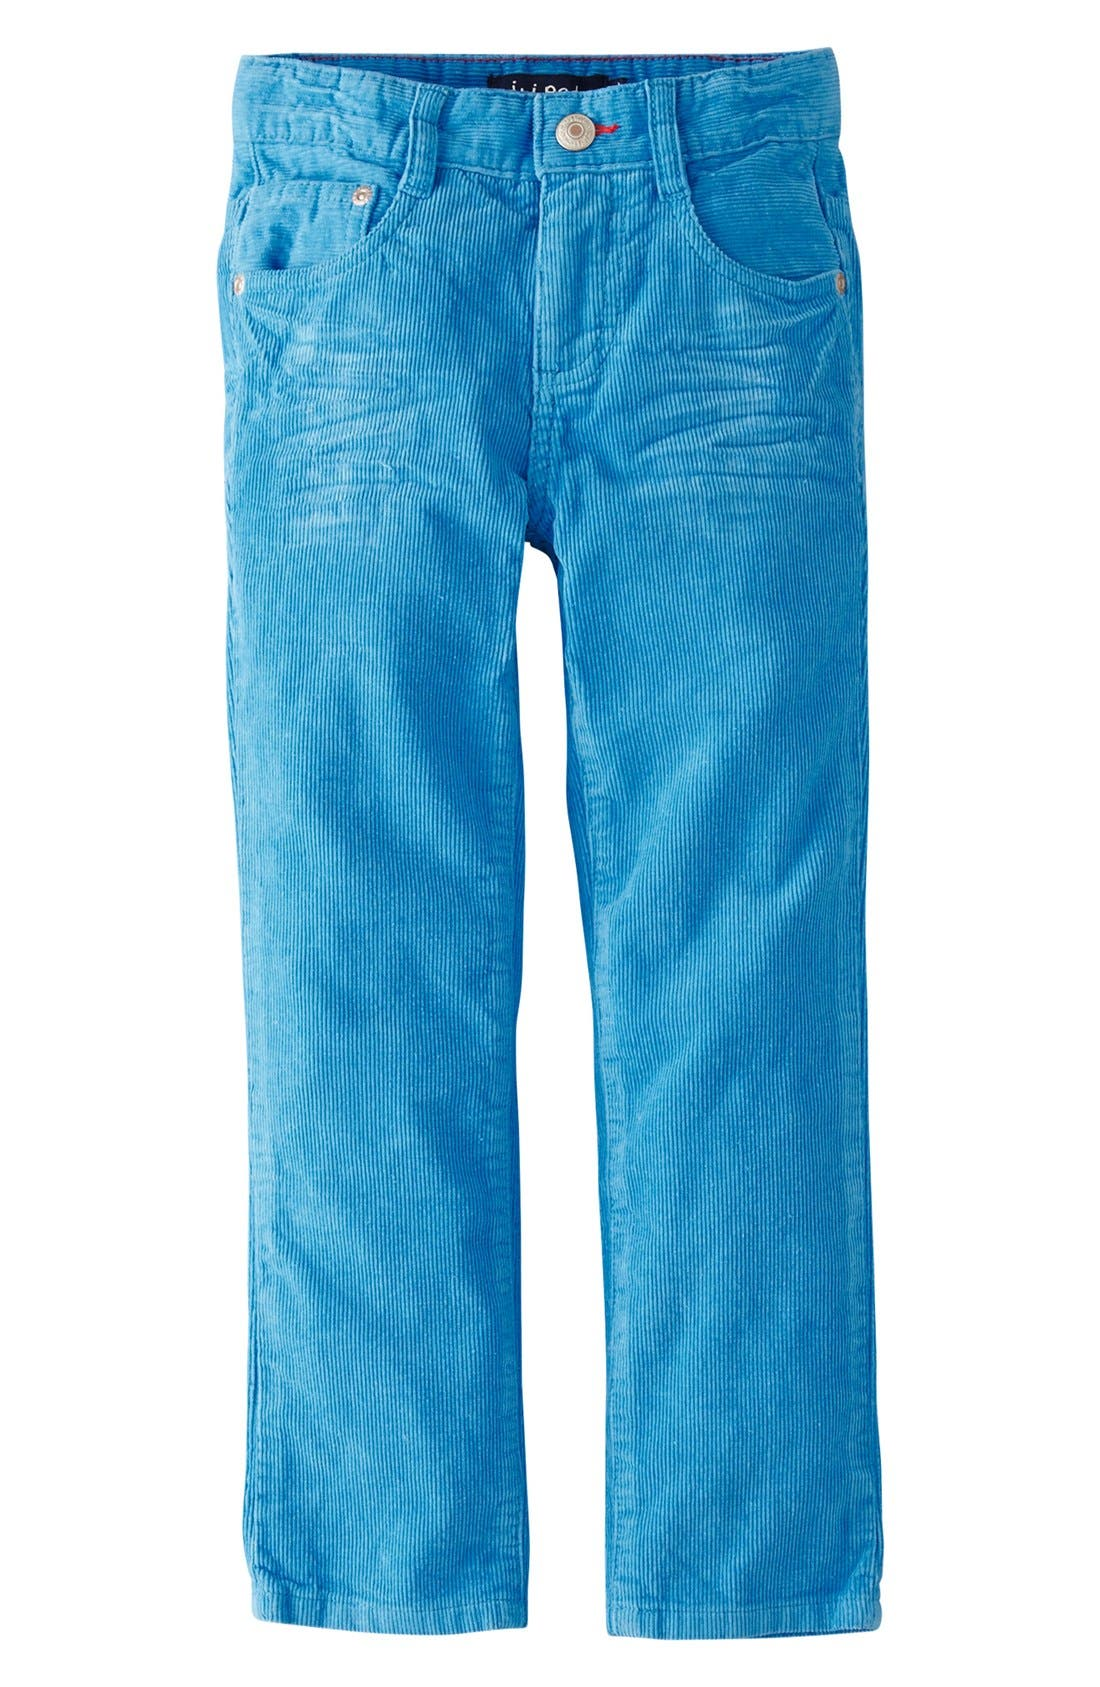 Main Image - Mini Boden Slim Fit Corduroy Pants (Toddler Boys, Little Boys & Big Boys)